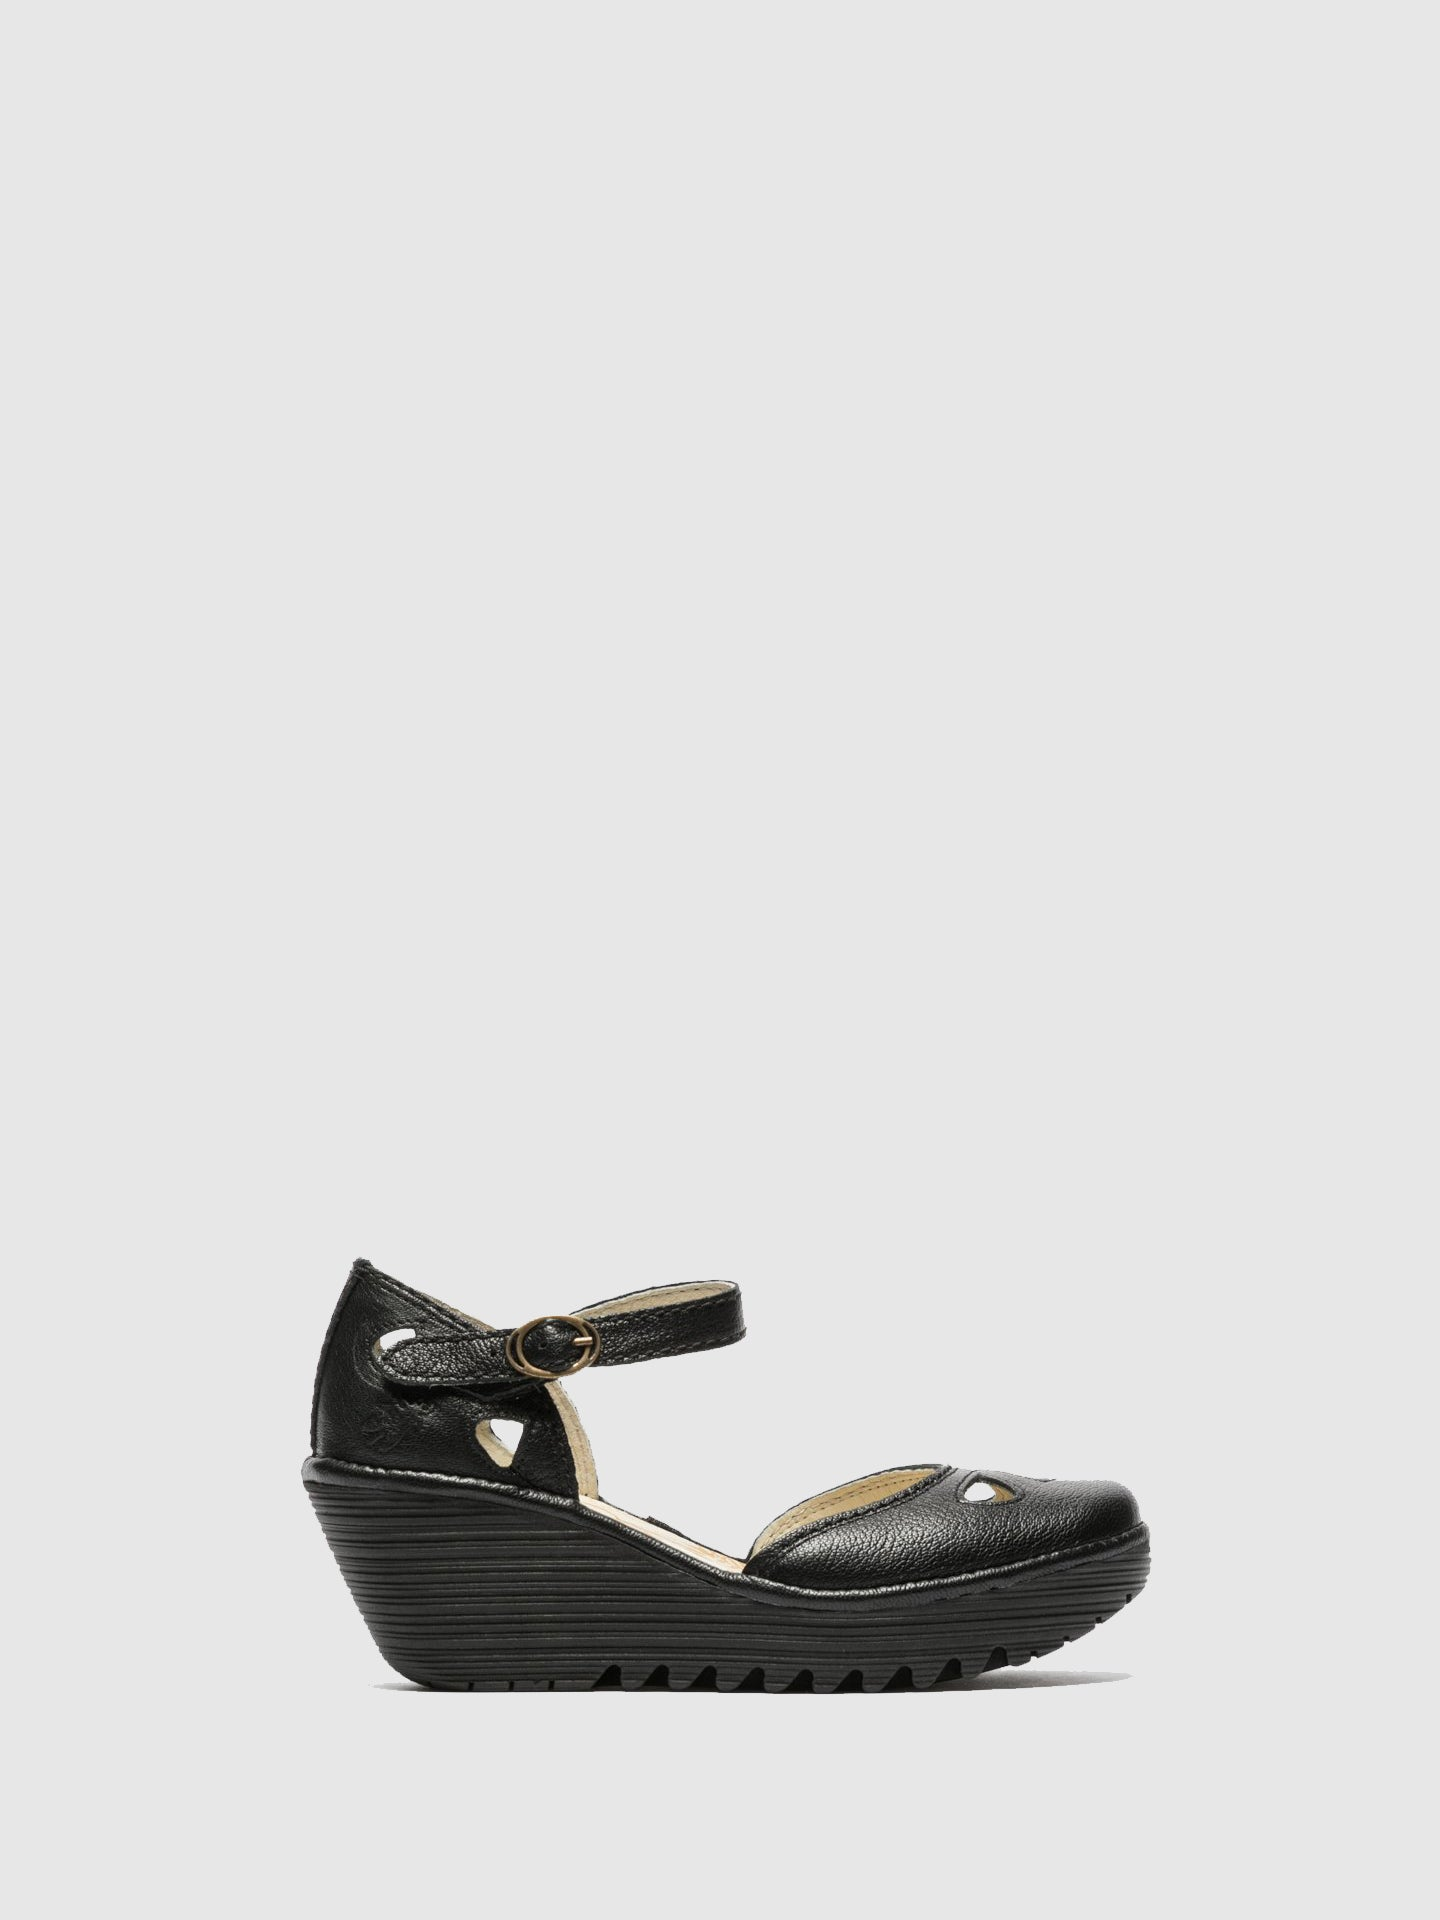 Fly London Carbon Black Wedge Sandals